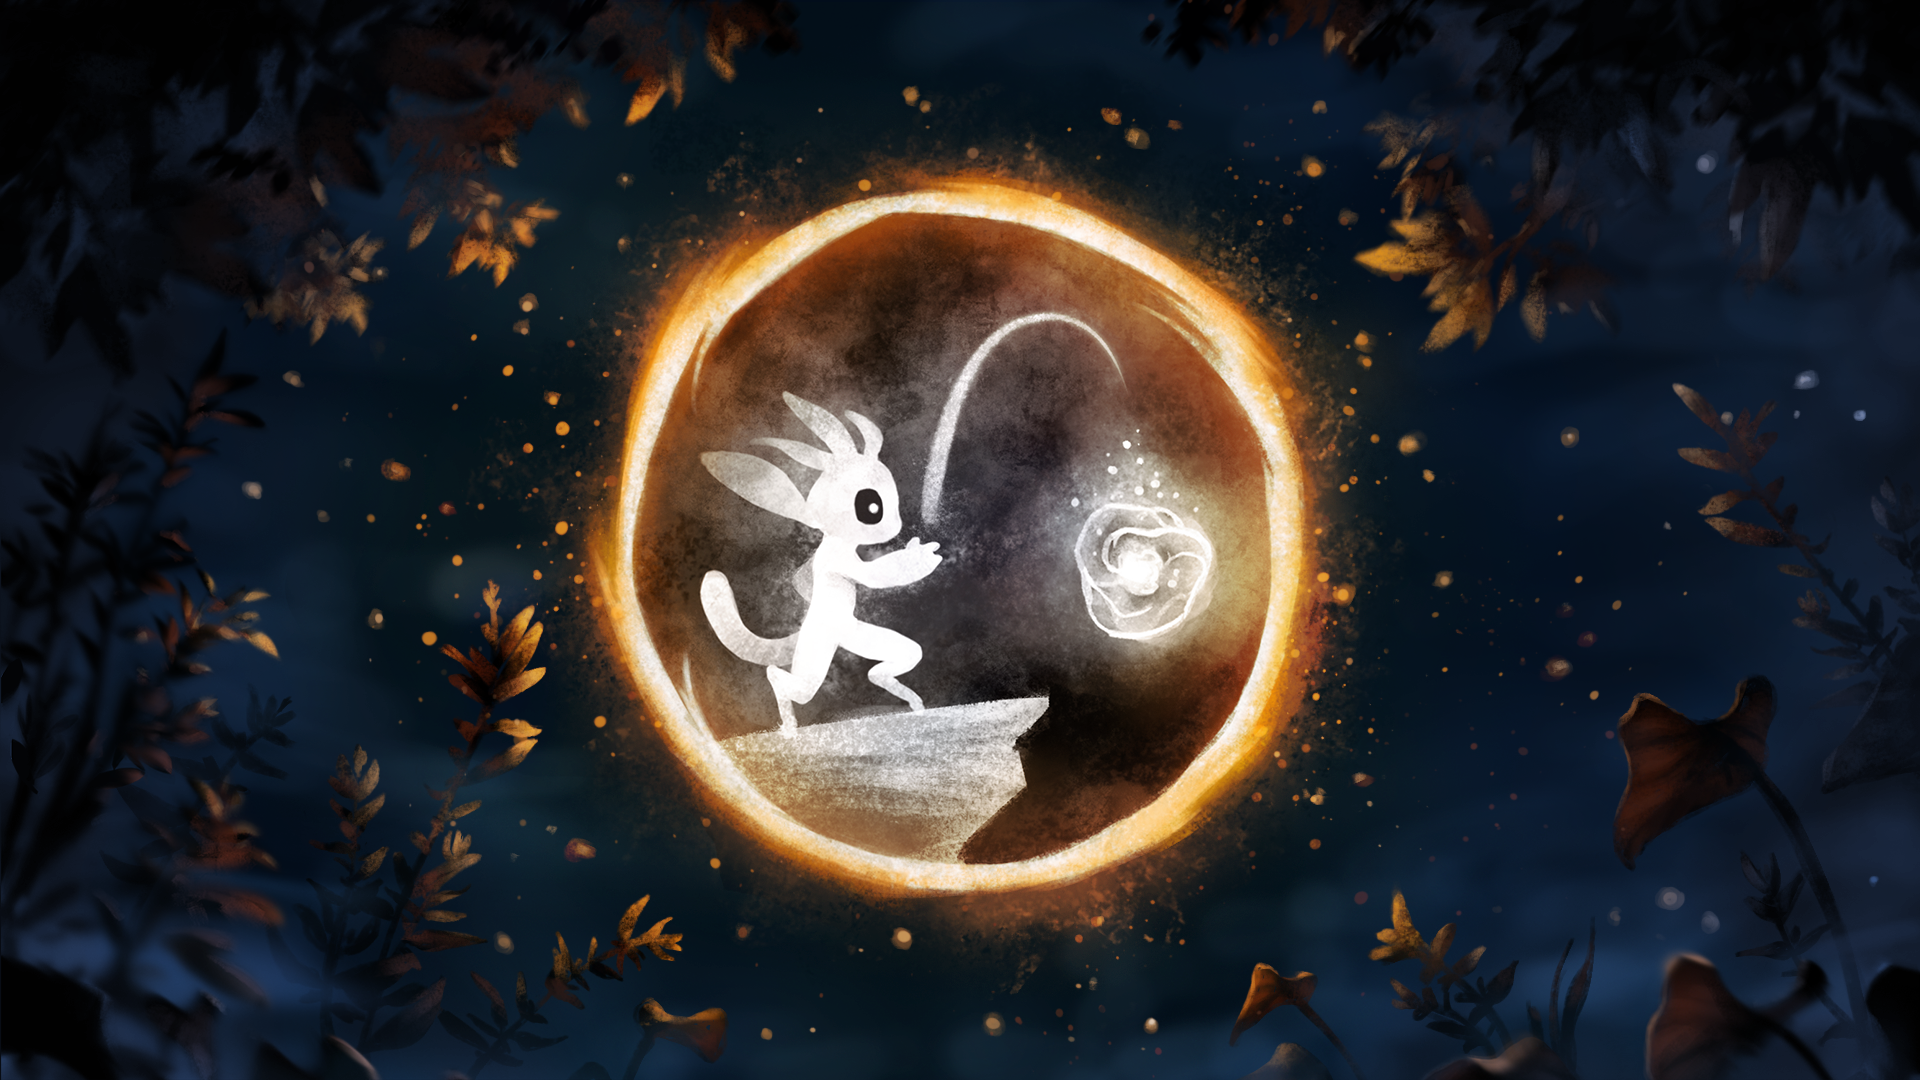 Explosive Lobb achievement for Ori and the Blind Forest on Nintendo Switch